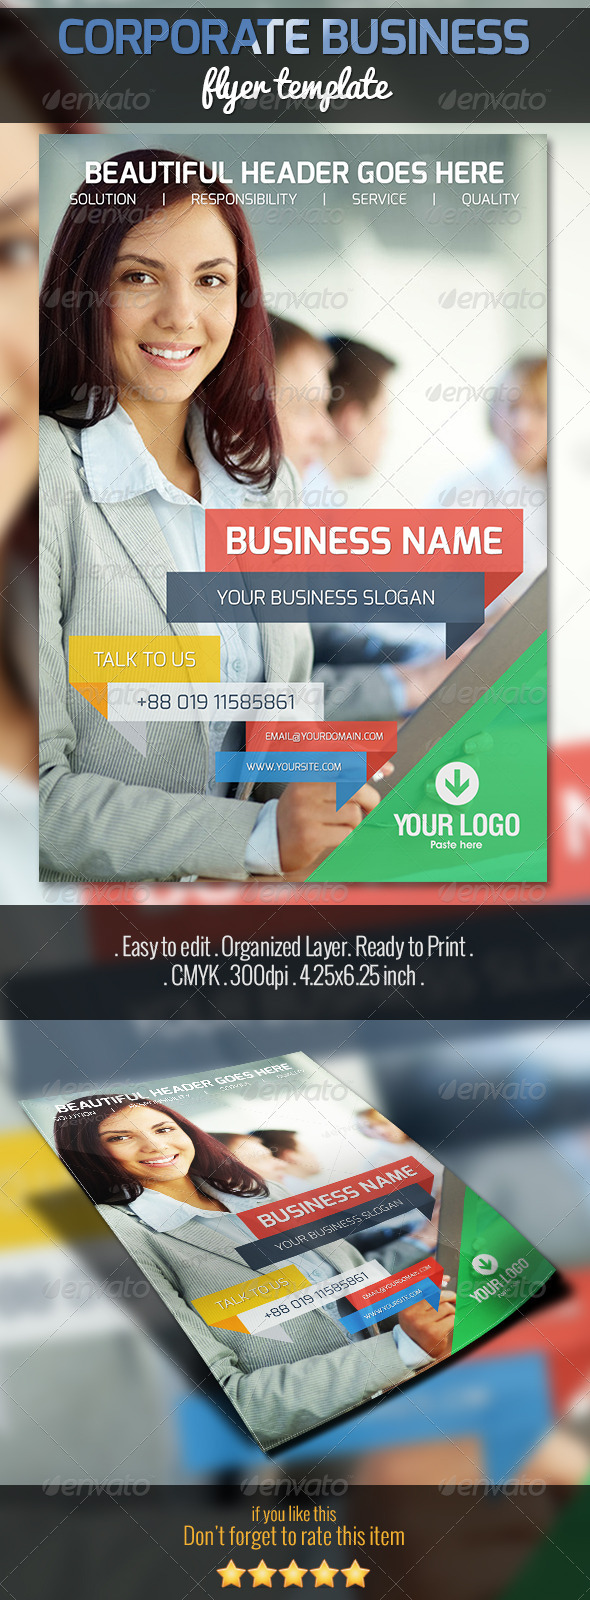 GraphicRiver Corporate Business Flyer 5257333